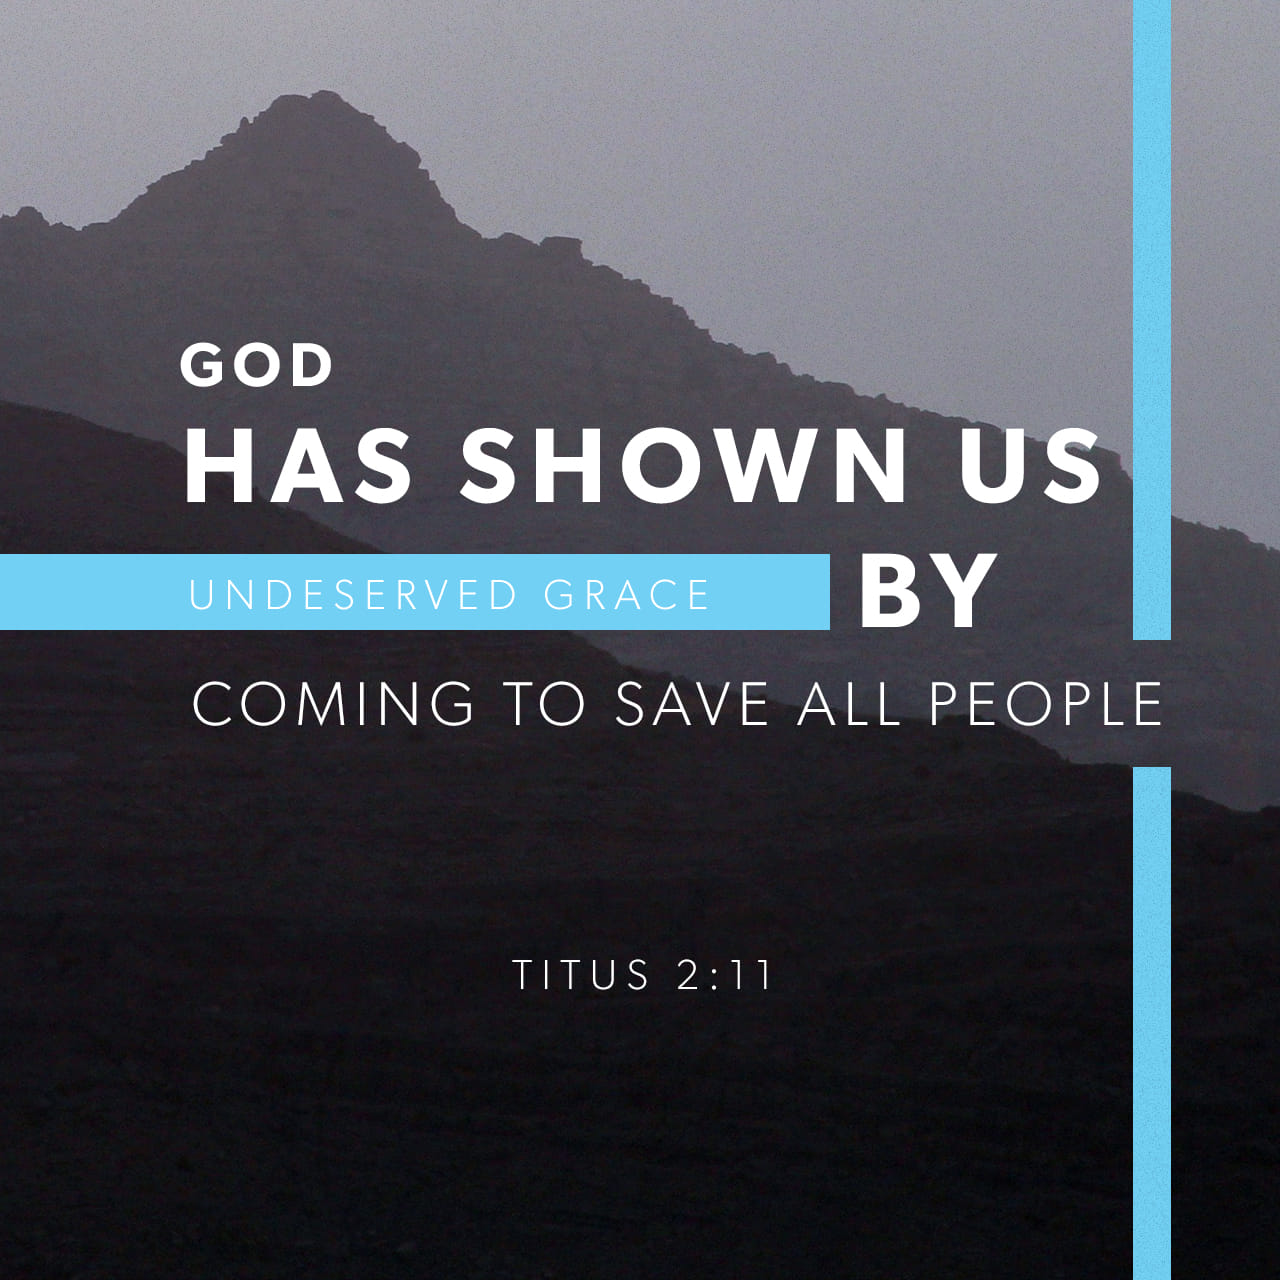 Titus 2:11-12 For the grace of God that bringeth salvation hath appeared to all men, Teaching us that, denying ungodliness and worldly lusts, we should live soberly, righteously, and godly, in this present world   King James Version (KJV)